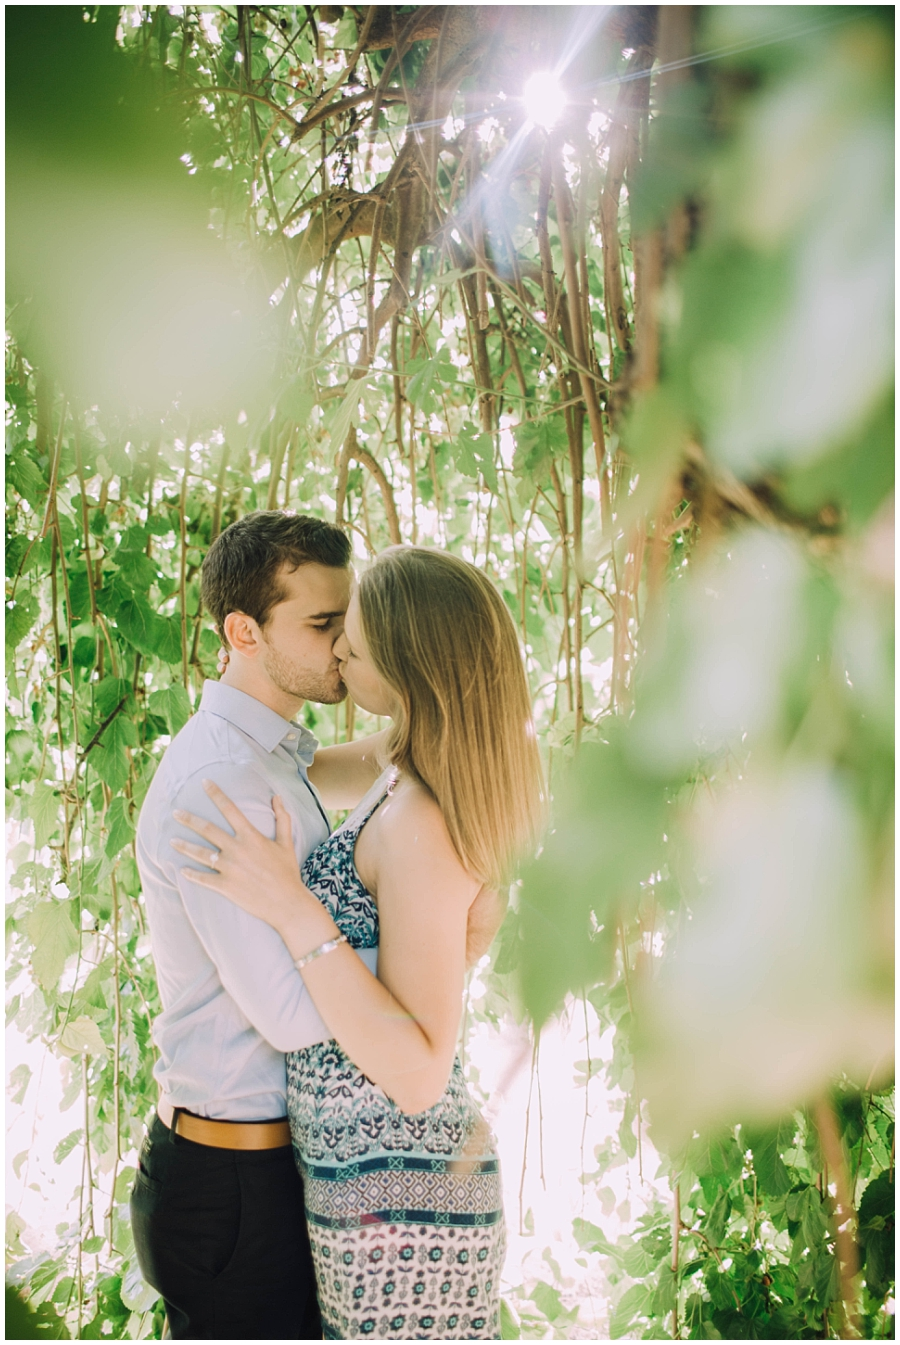 Ronel Kruger Cape Town Wedding and Lifestyle Photographer_8444.jpg